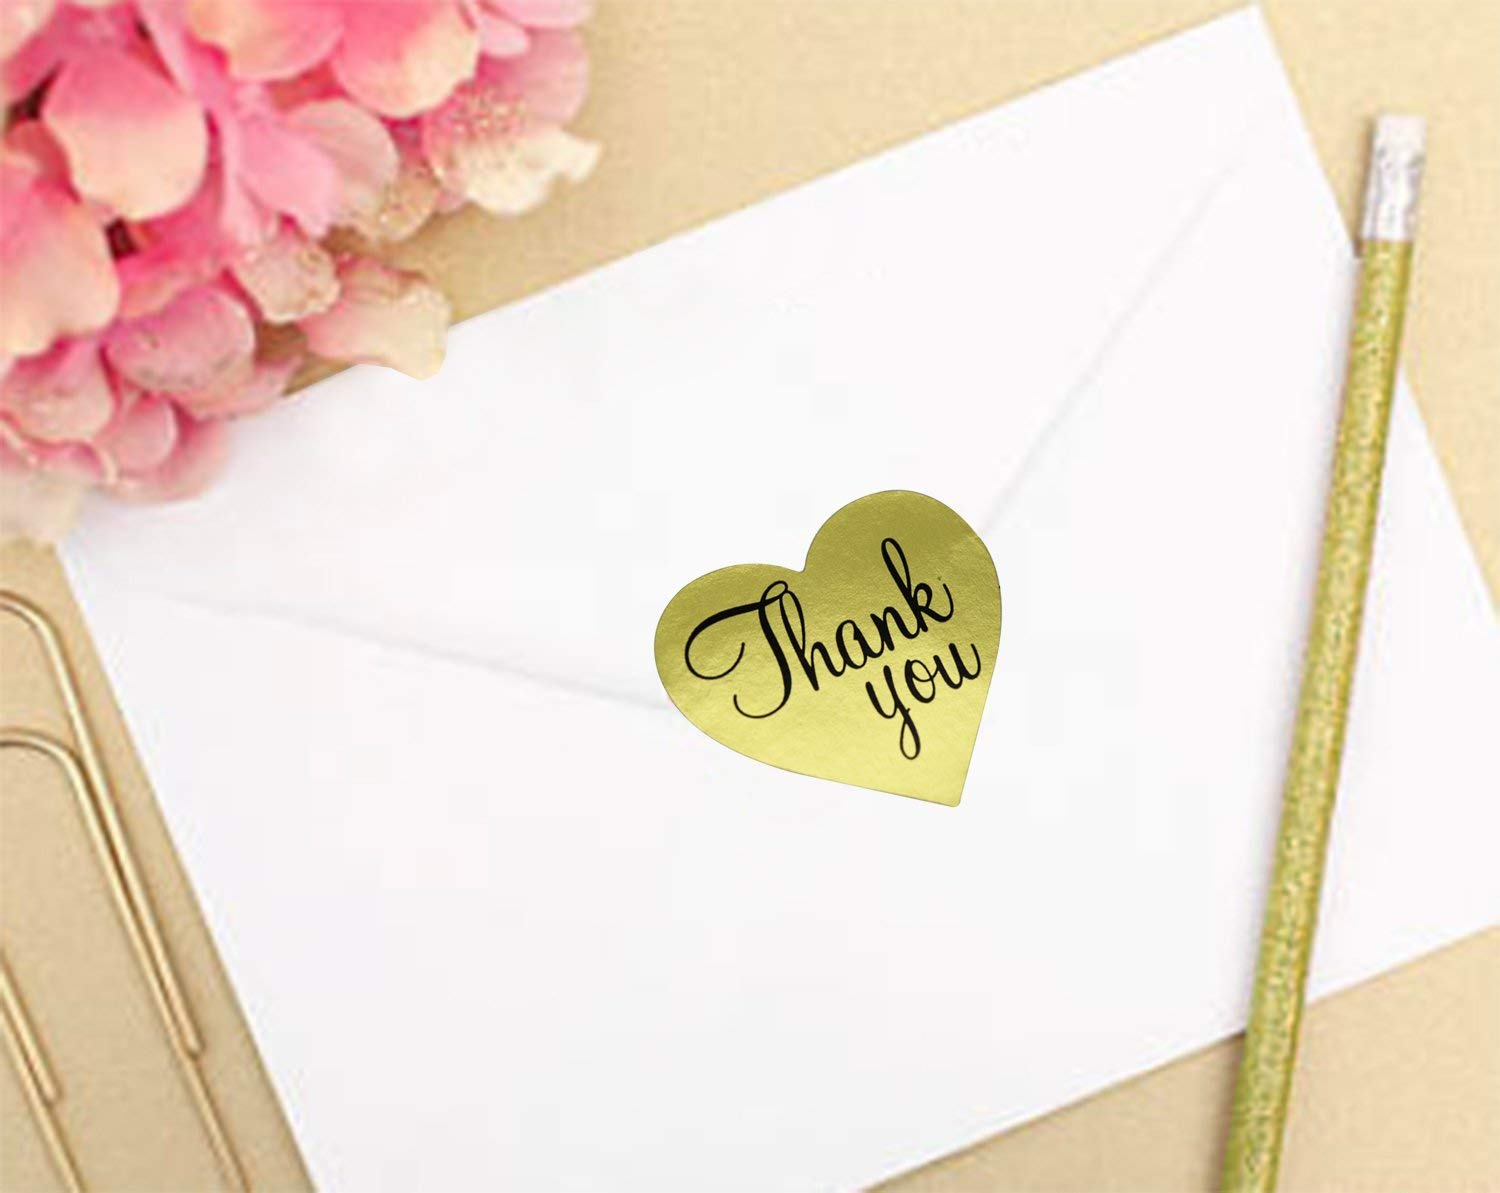 Thank You Stickers Gold Heart Shaped Foil Easy-Pull Adhesive Foil Labels (500 Pack) by Purple Q Crafts (Image #2)